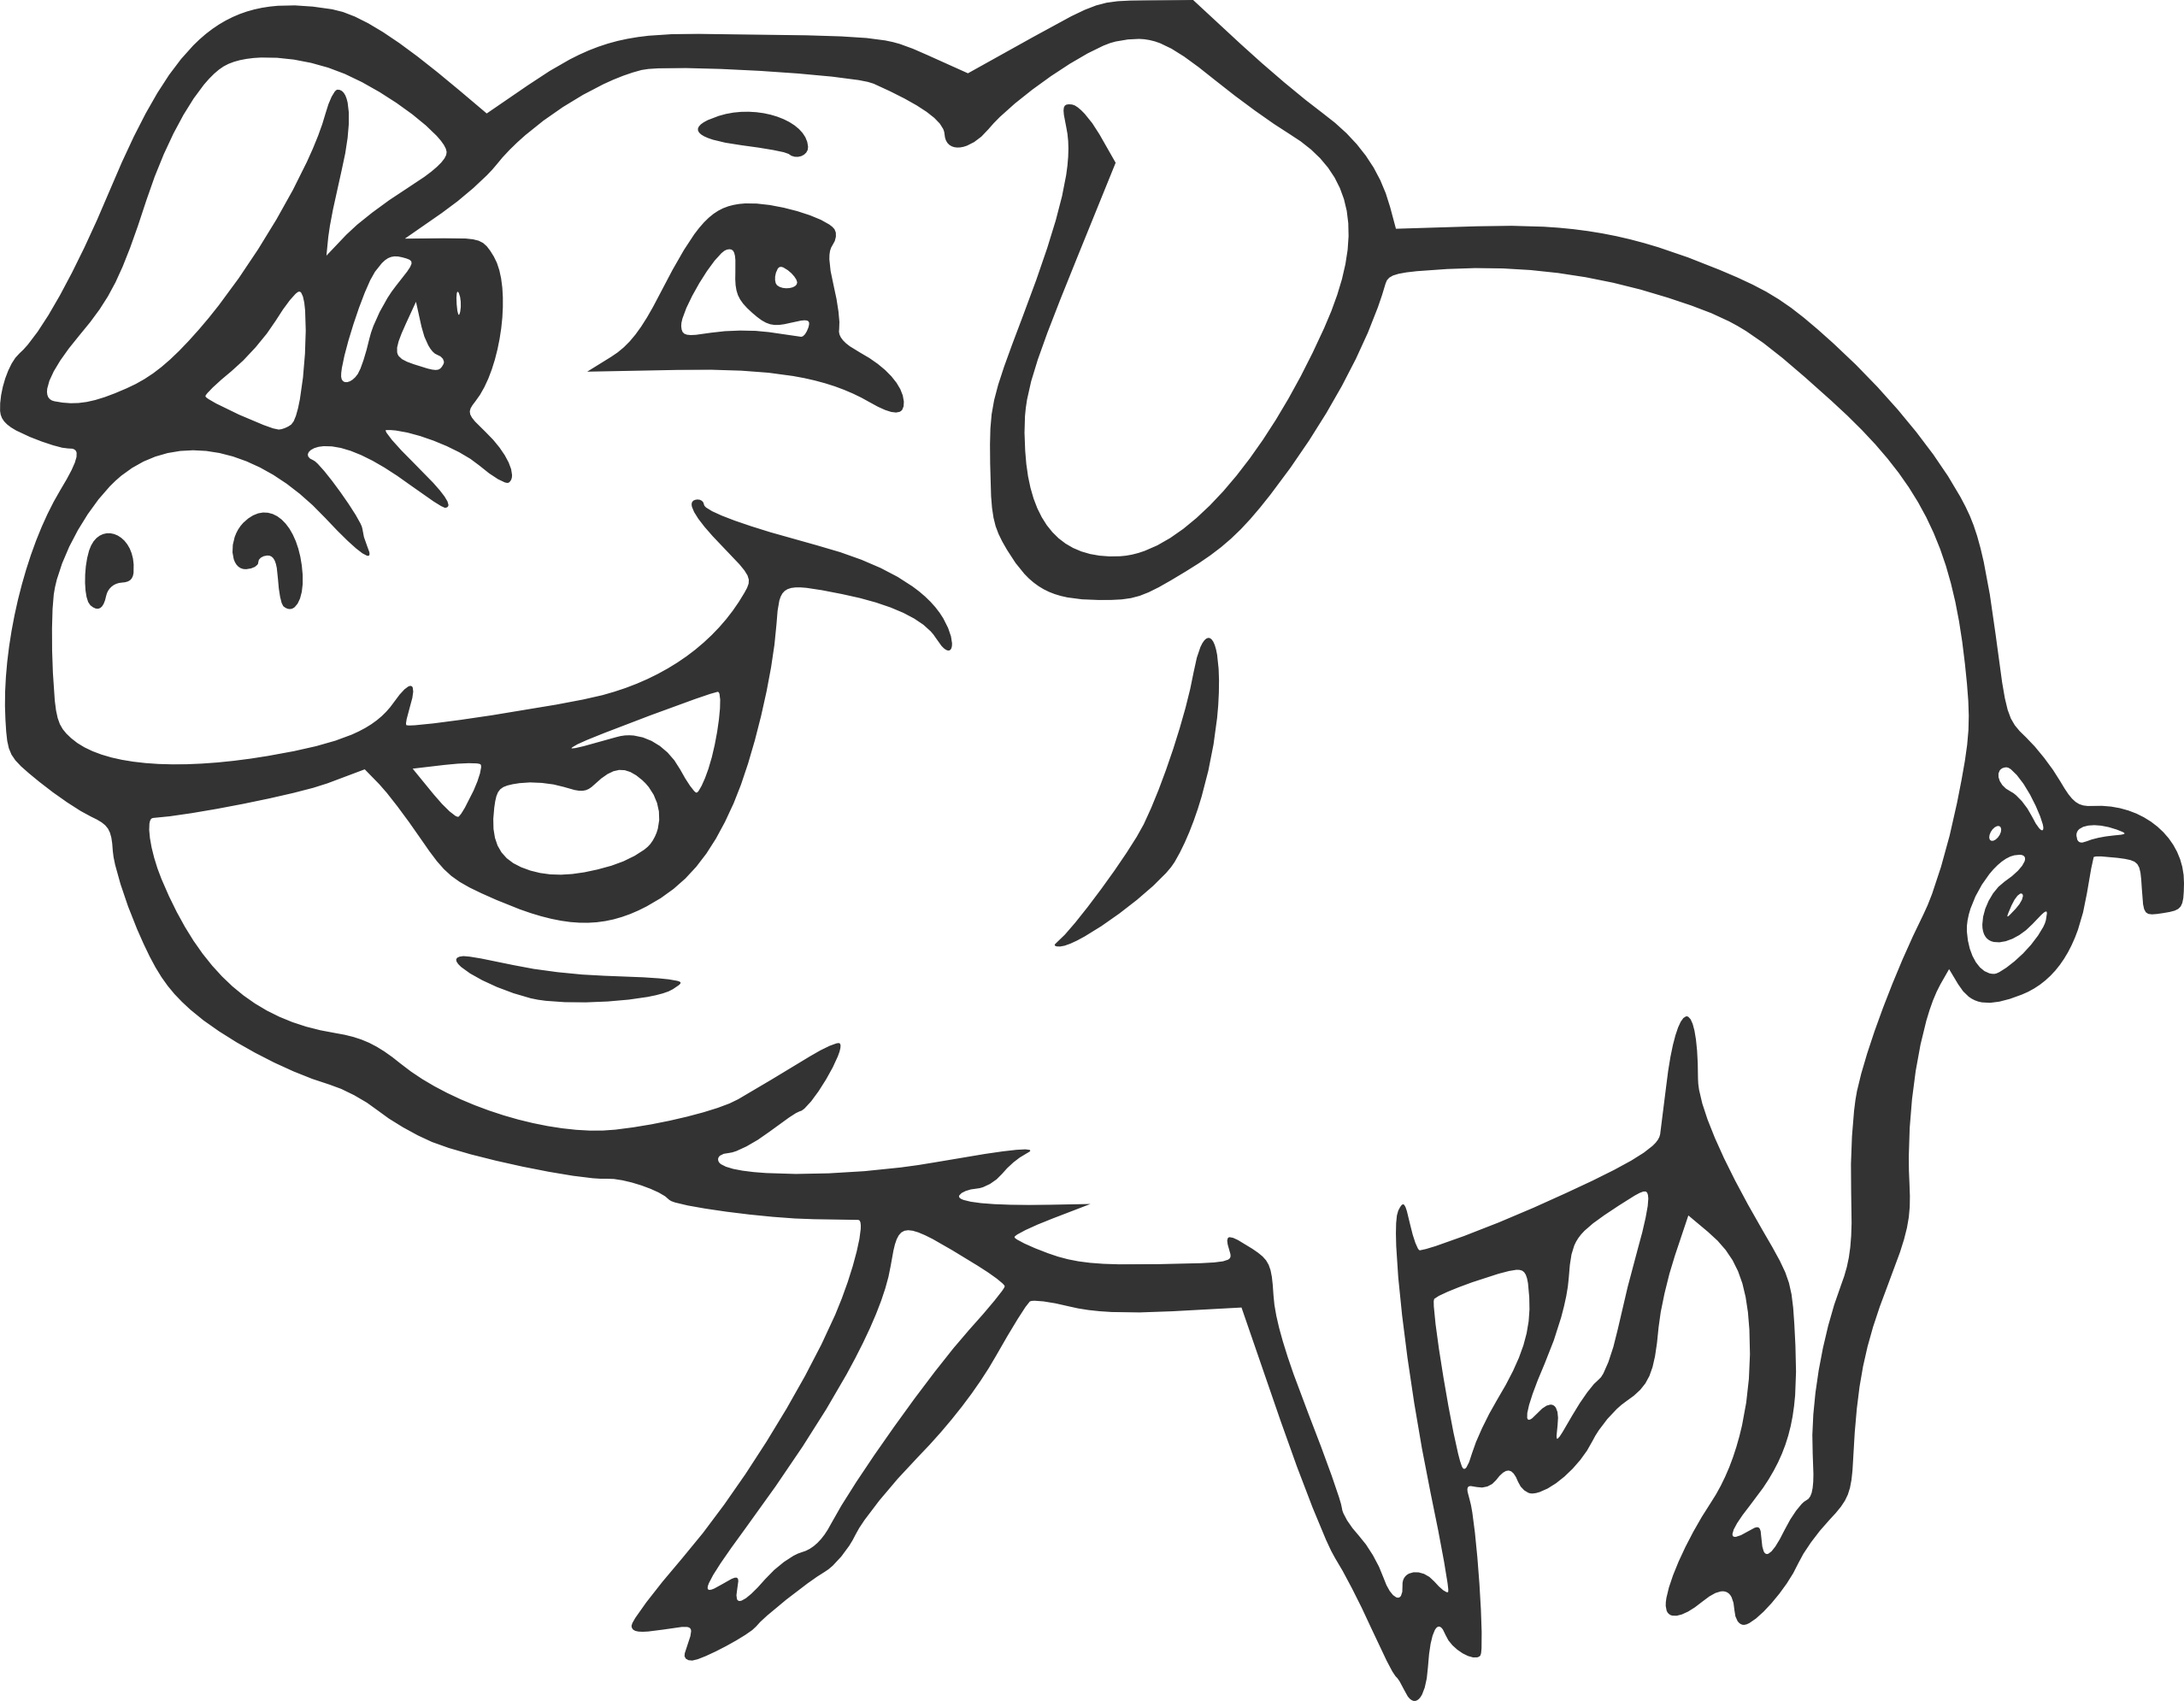 Line Drawing Of A Pig Face : Pig clipart black and white panda free